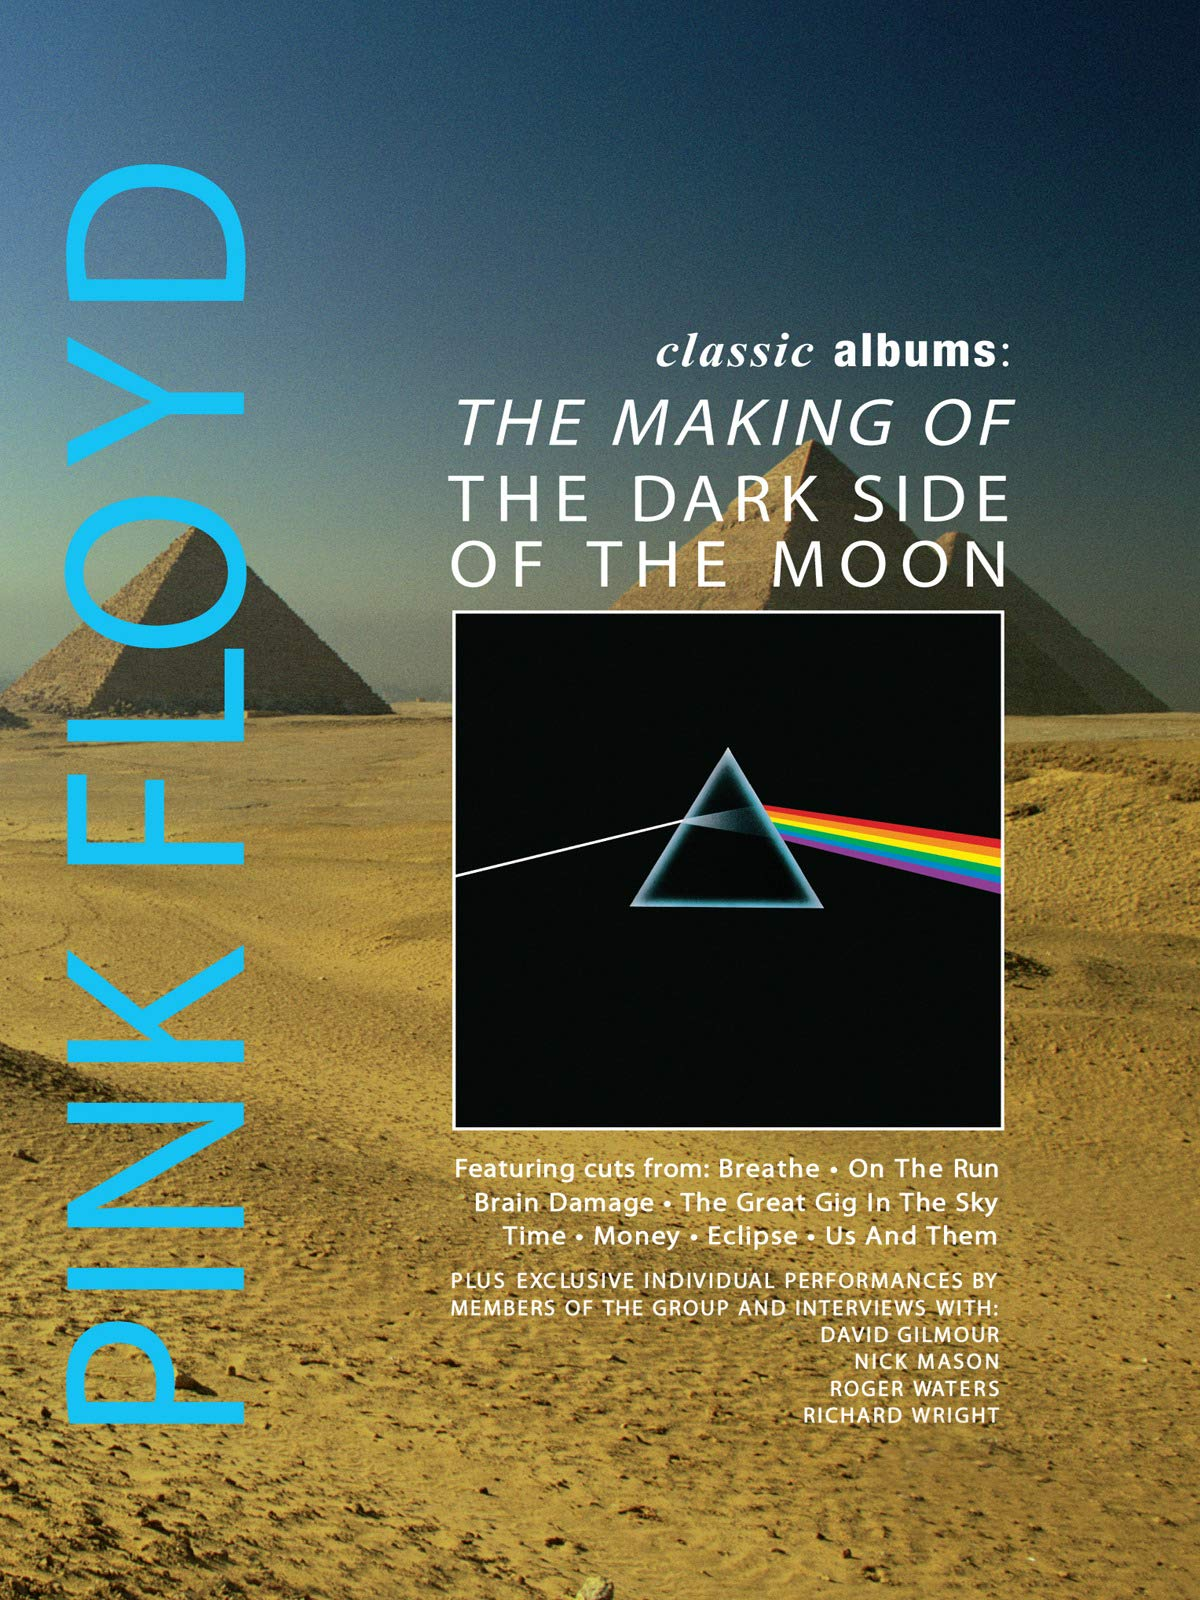 Pink Floyd - The Making Of The Dark Side Of The Moon (Classic Album) on Amazon Prime Video UK